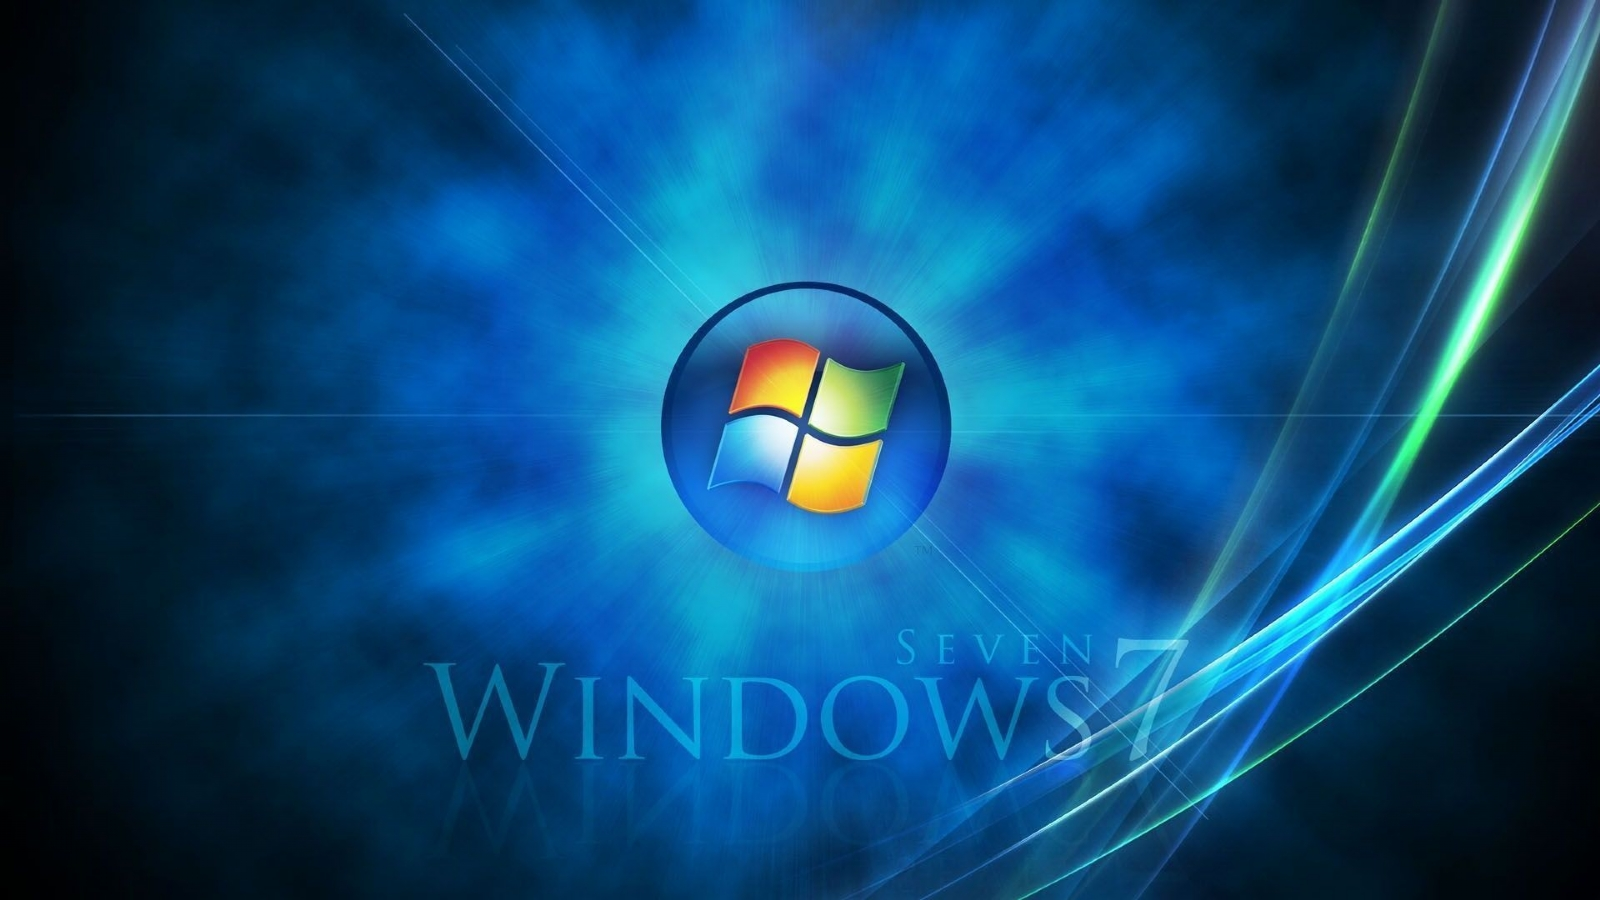 windows 7 wallpaper hd 1600x900 - wallpapersafari